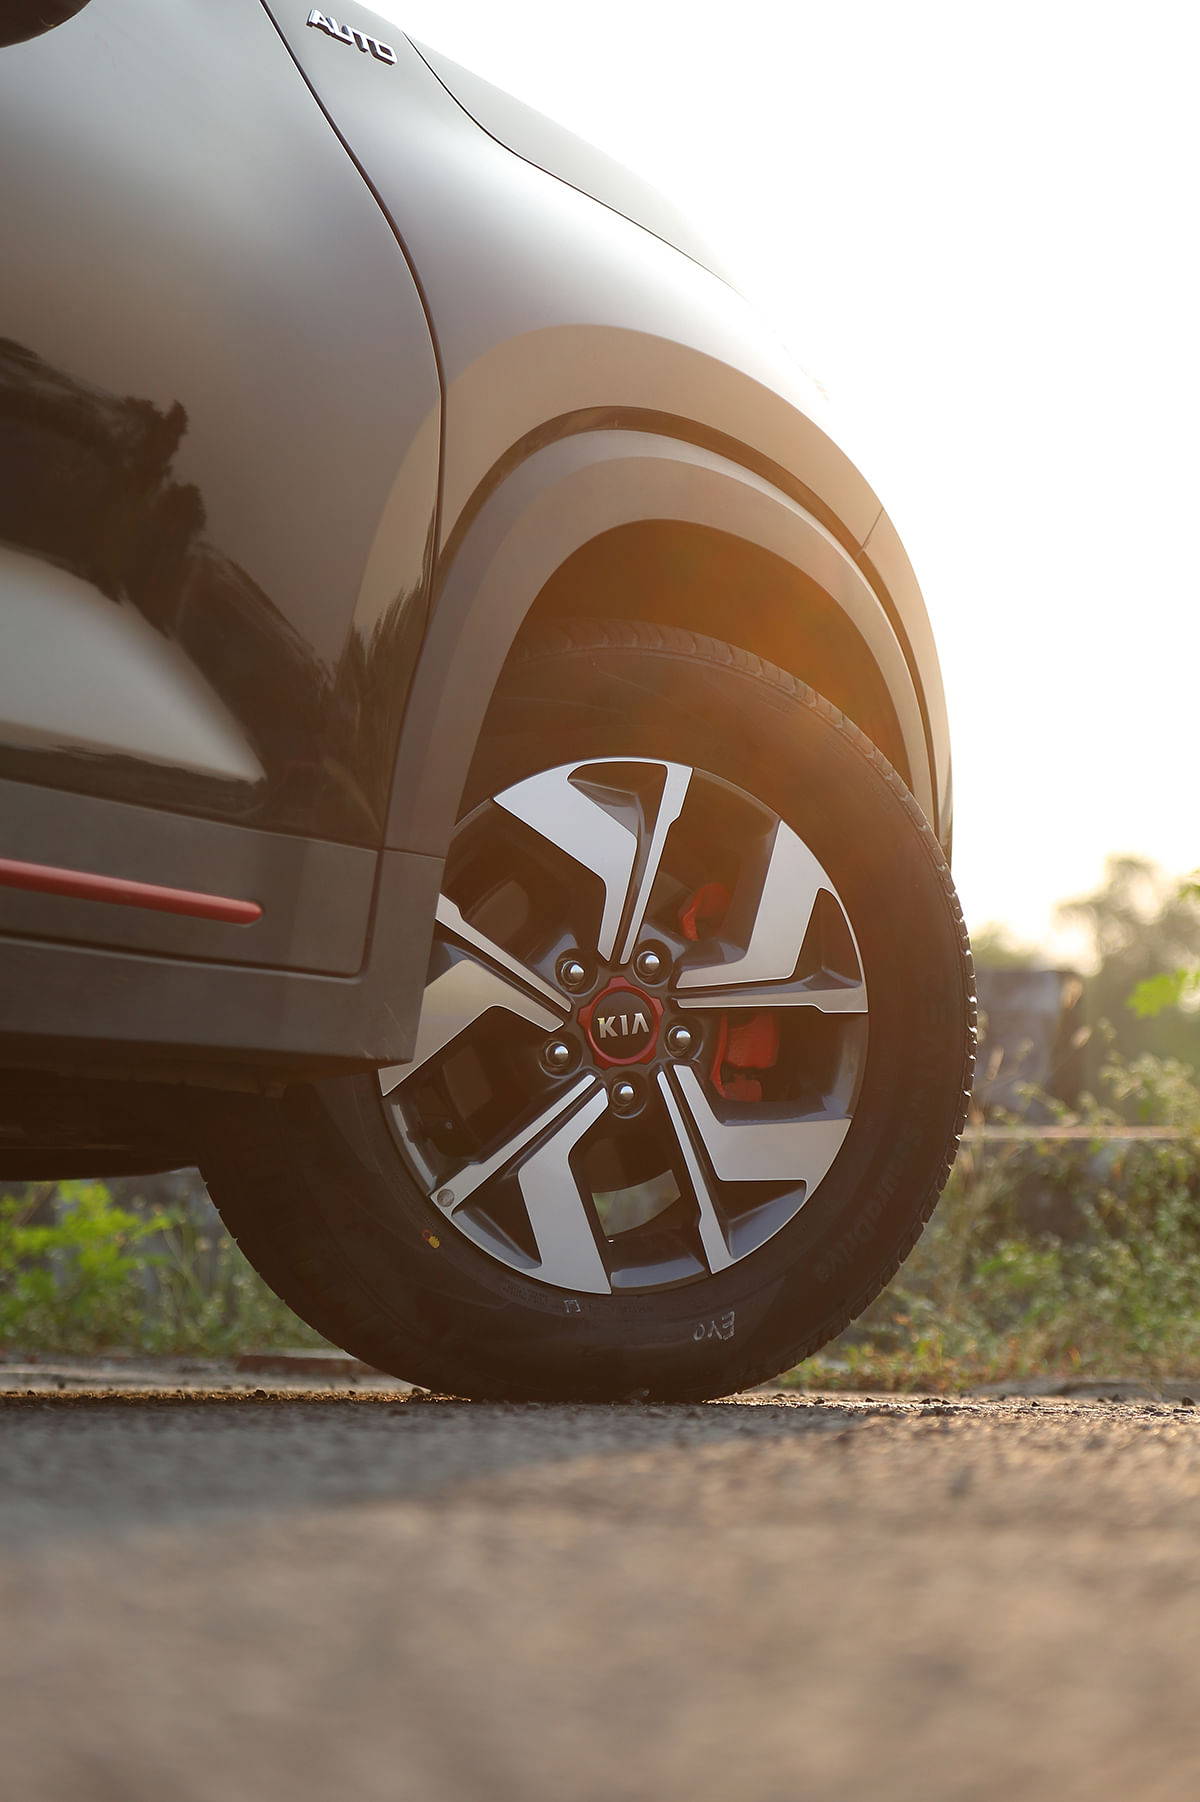 Even aftera few months of spirited driving, the CEAT SecuraDrive tyres look as good as new with barely any wear and tear